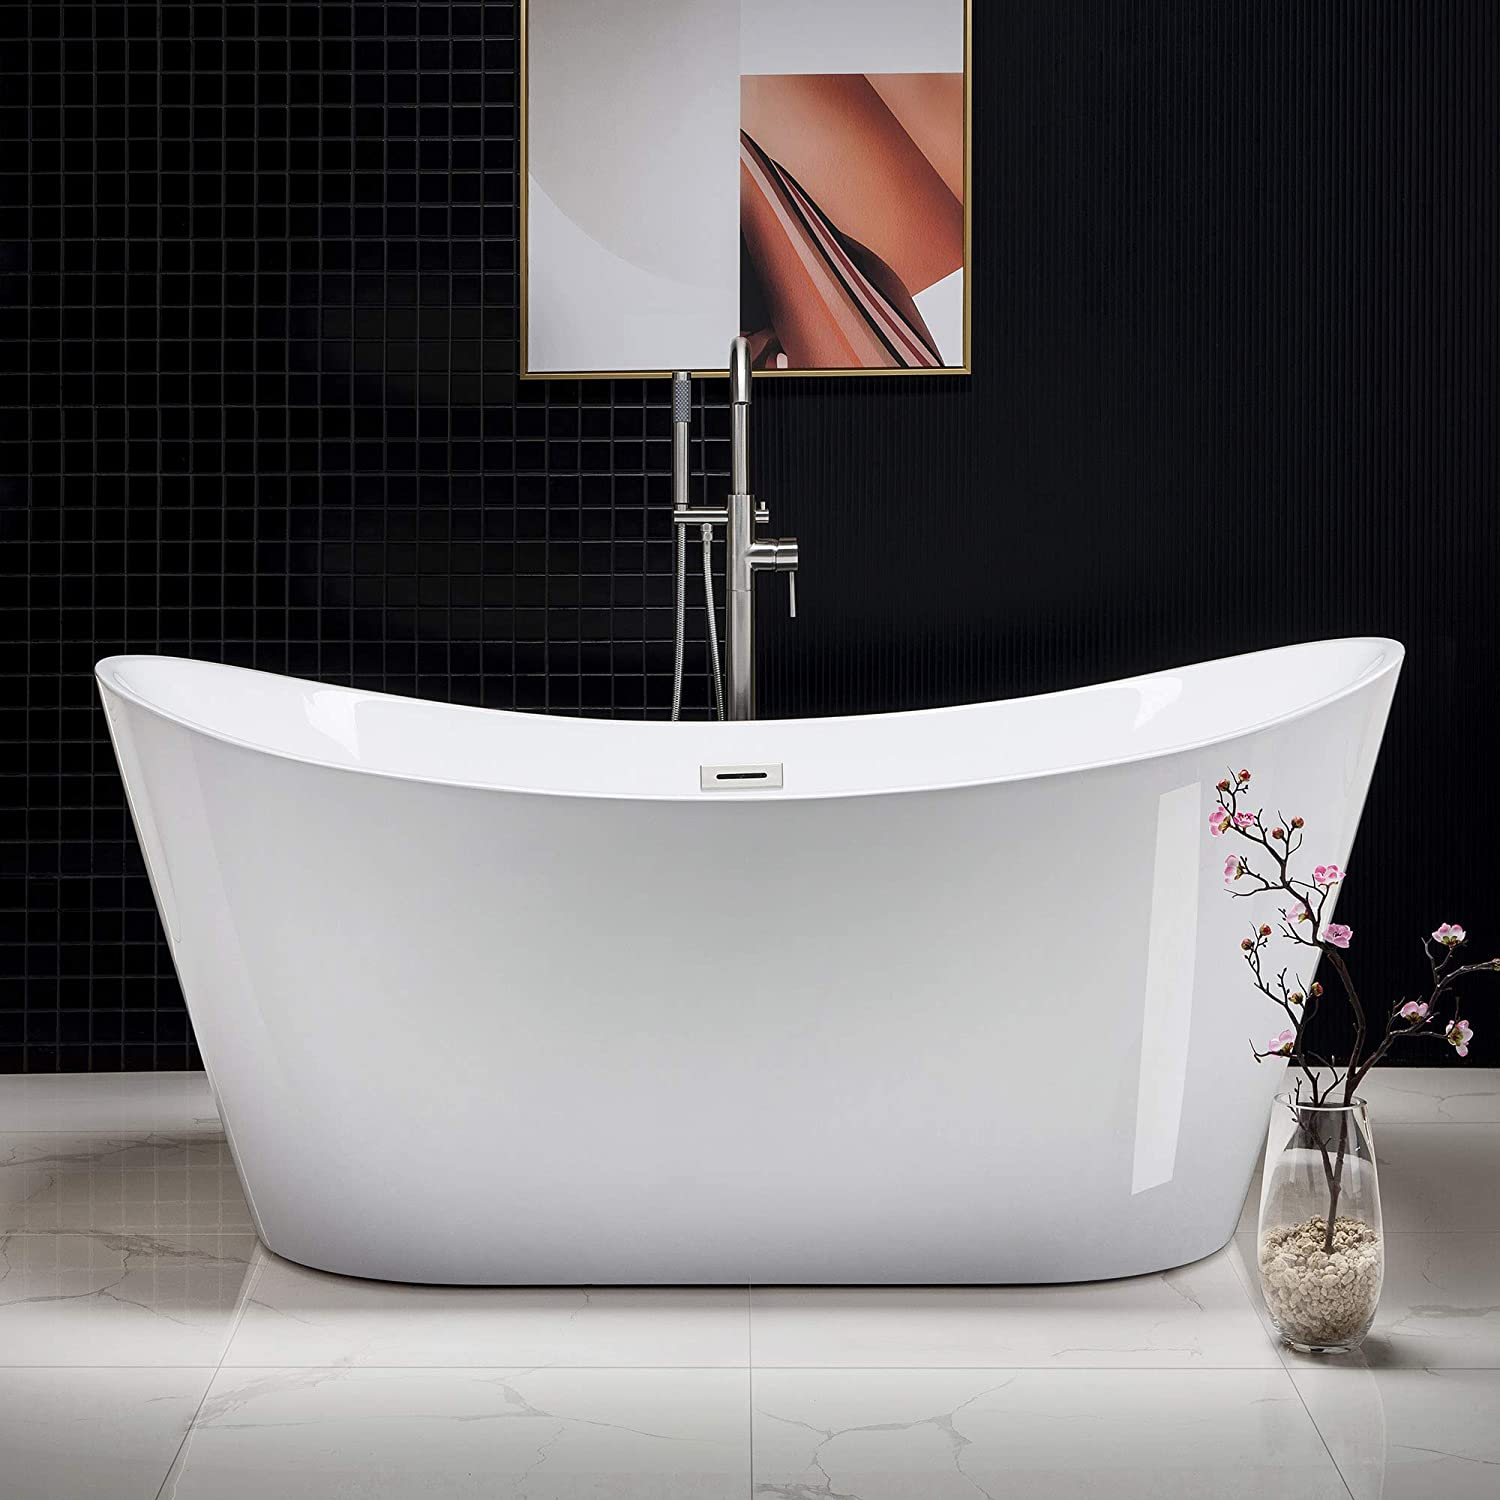 1. WOODBRIDGE Modern Bathroom Freestanding Bathtub